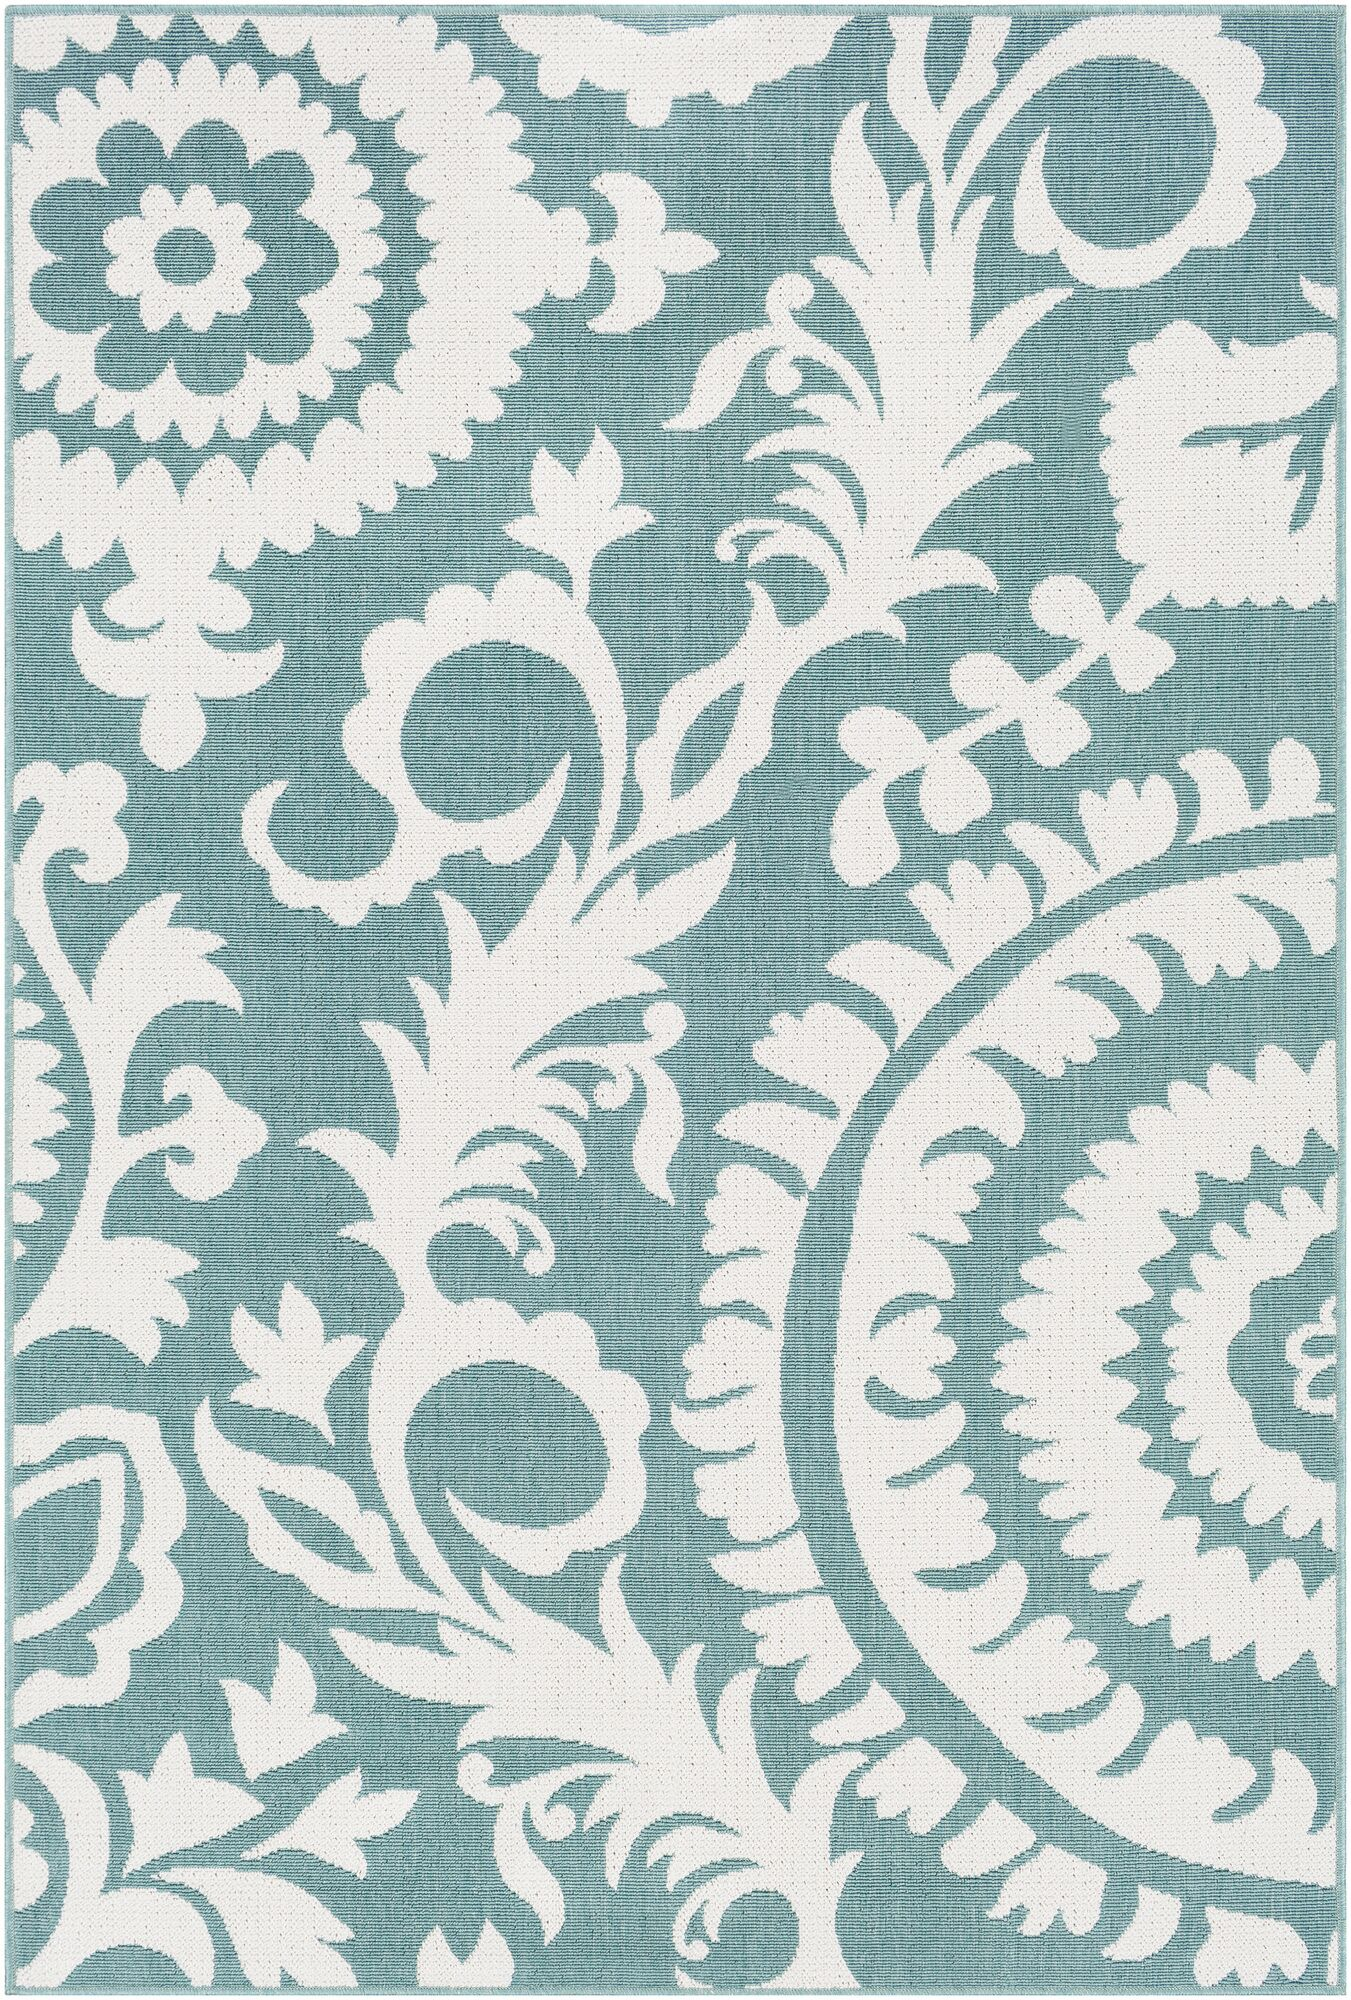 Floral Teal Indoor/Outdoor Area Rug Rug Size: Rectangle 5'3